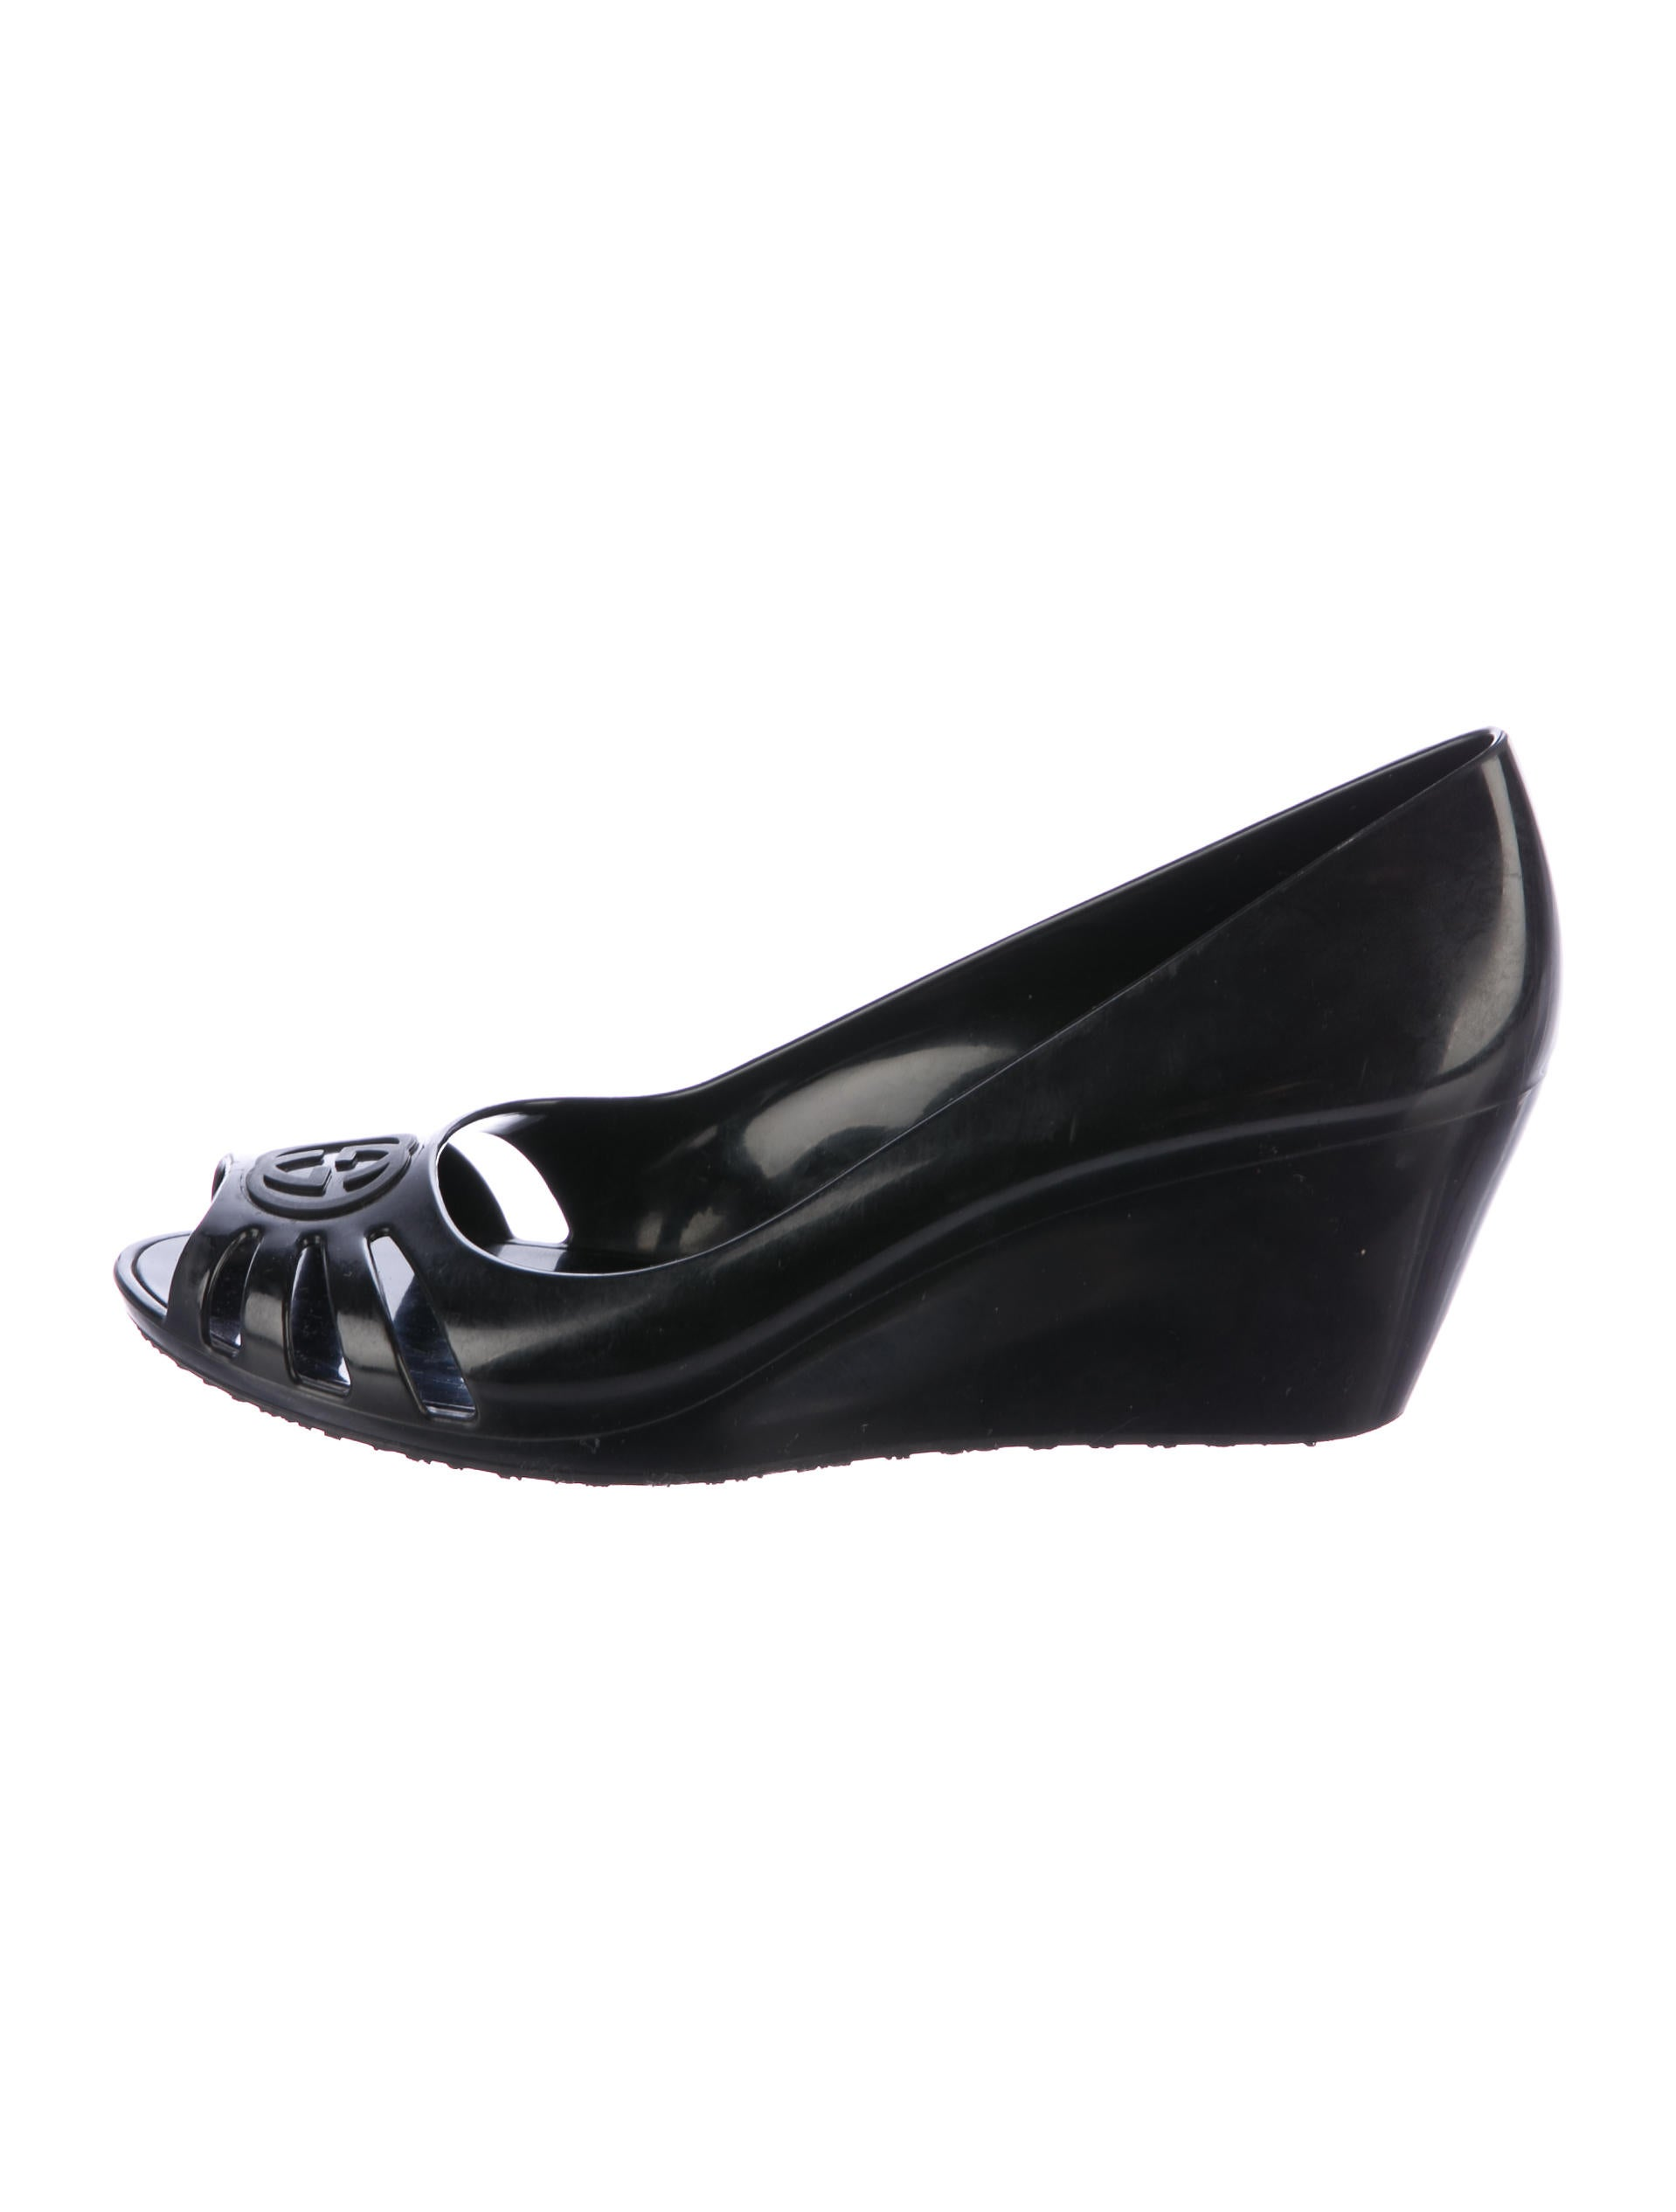 gucci gg peep toe wedges shoes guc164459 the realreal